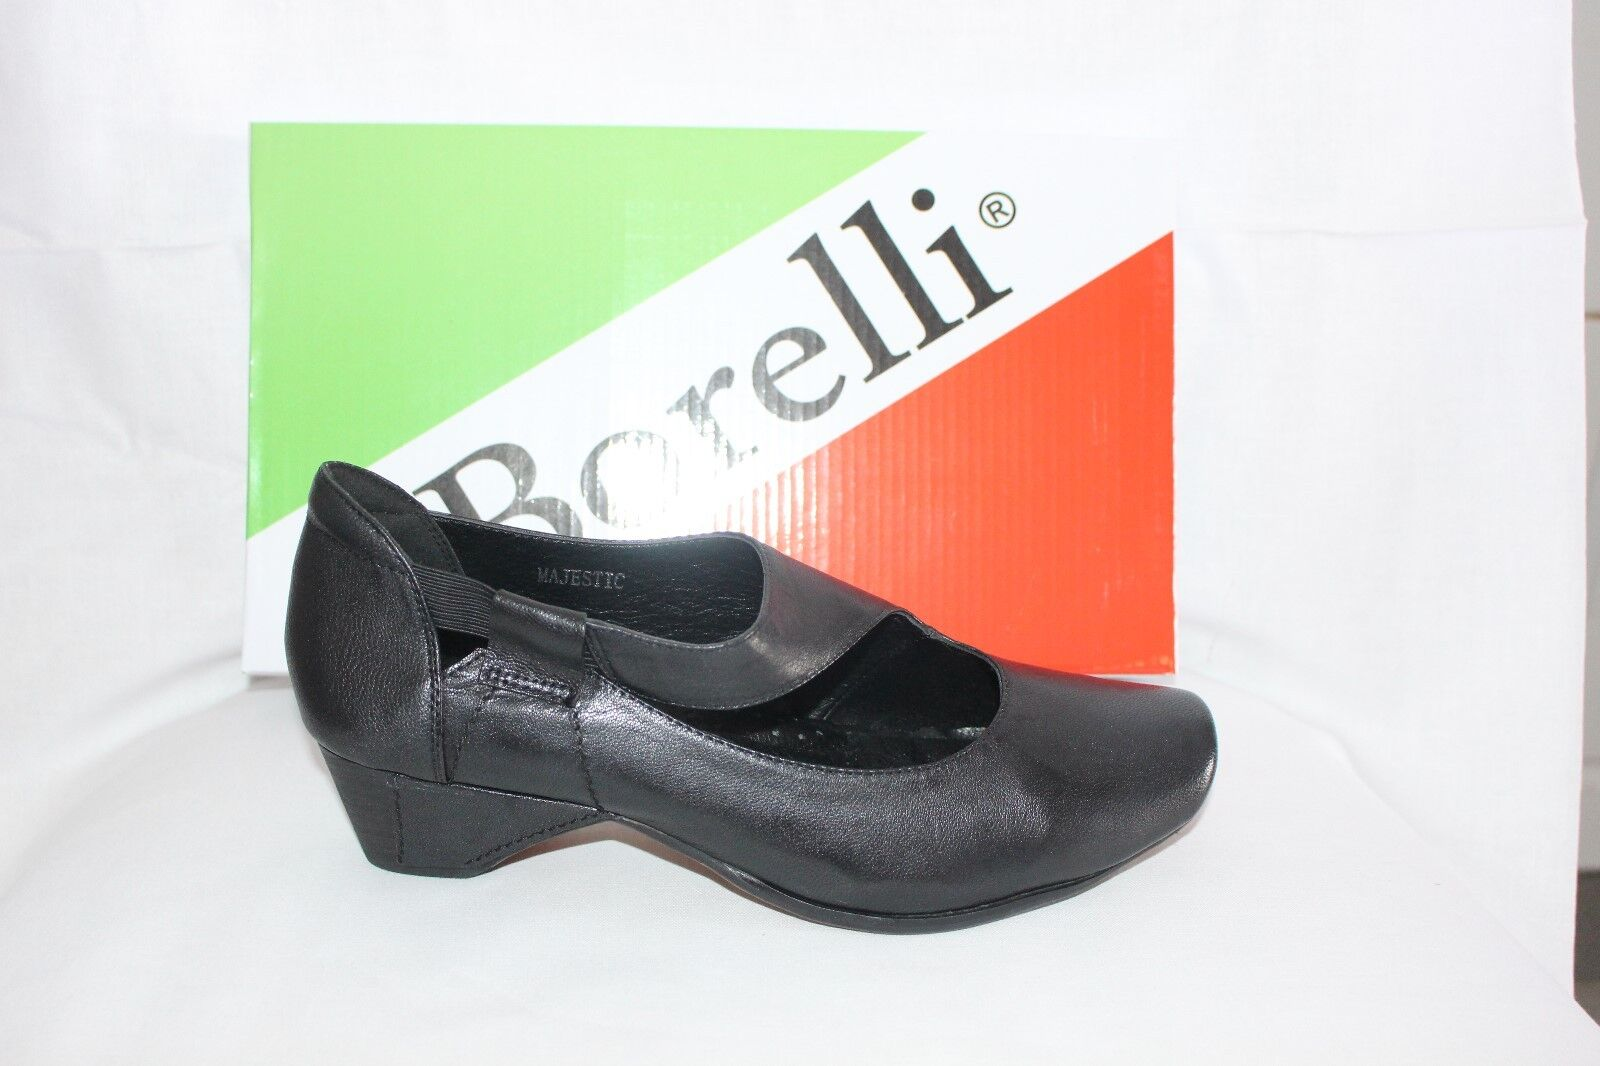 LADIES scarpe FOOTWEAR - Borelli Majestic court scarpe nero